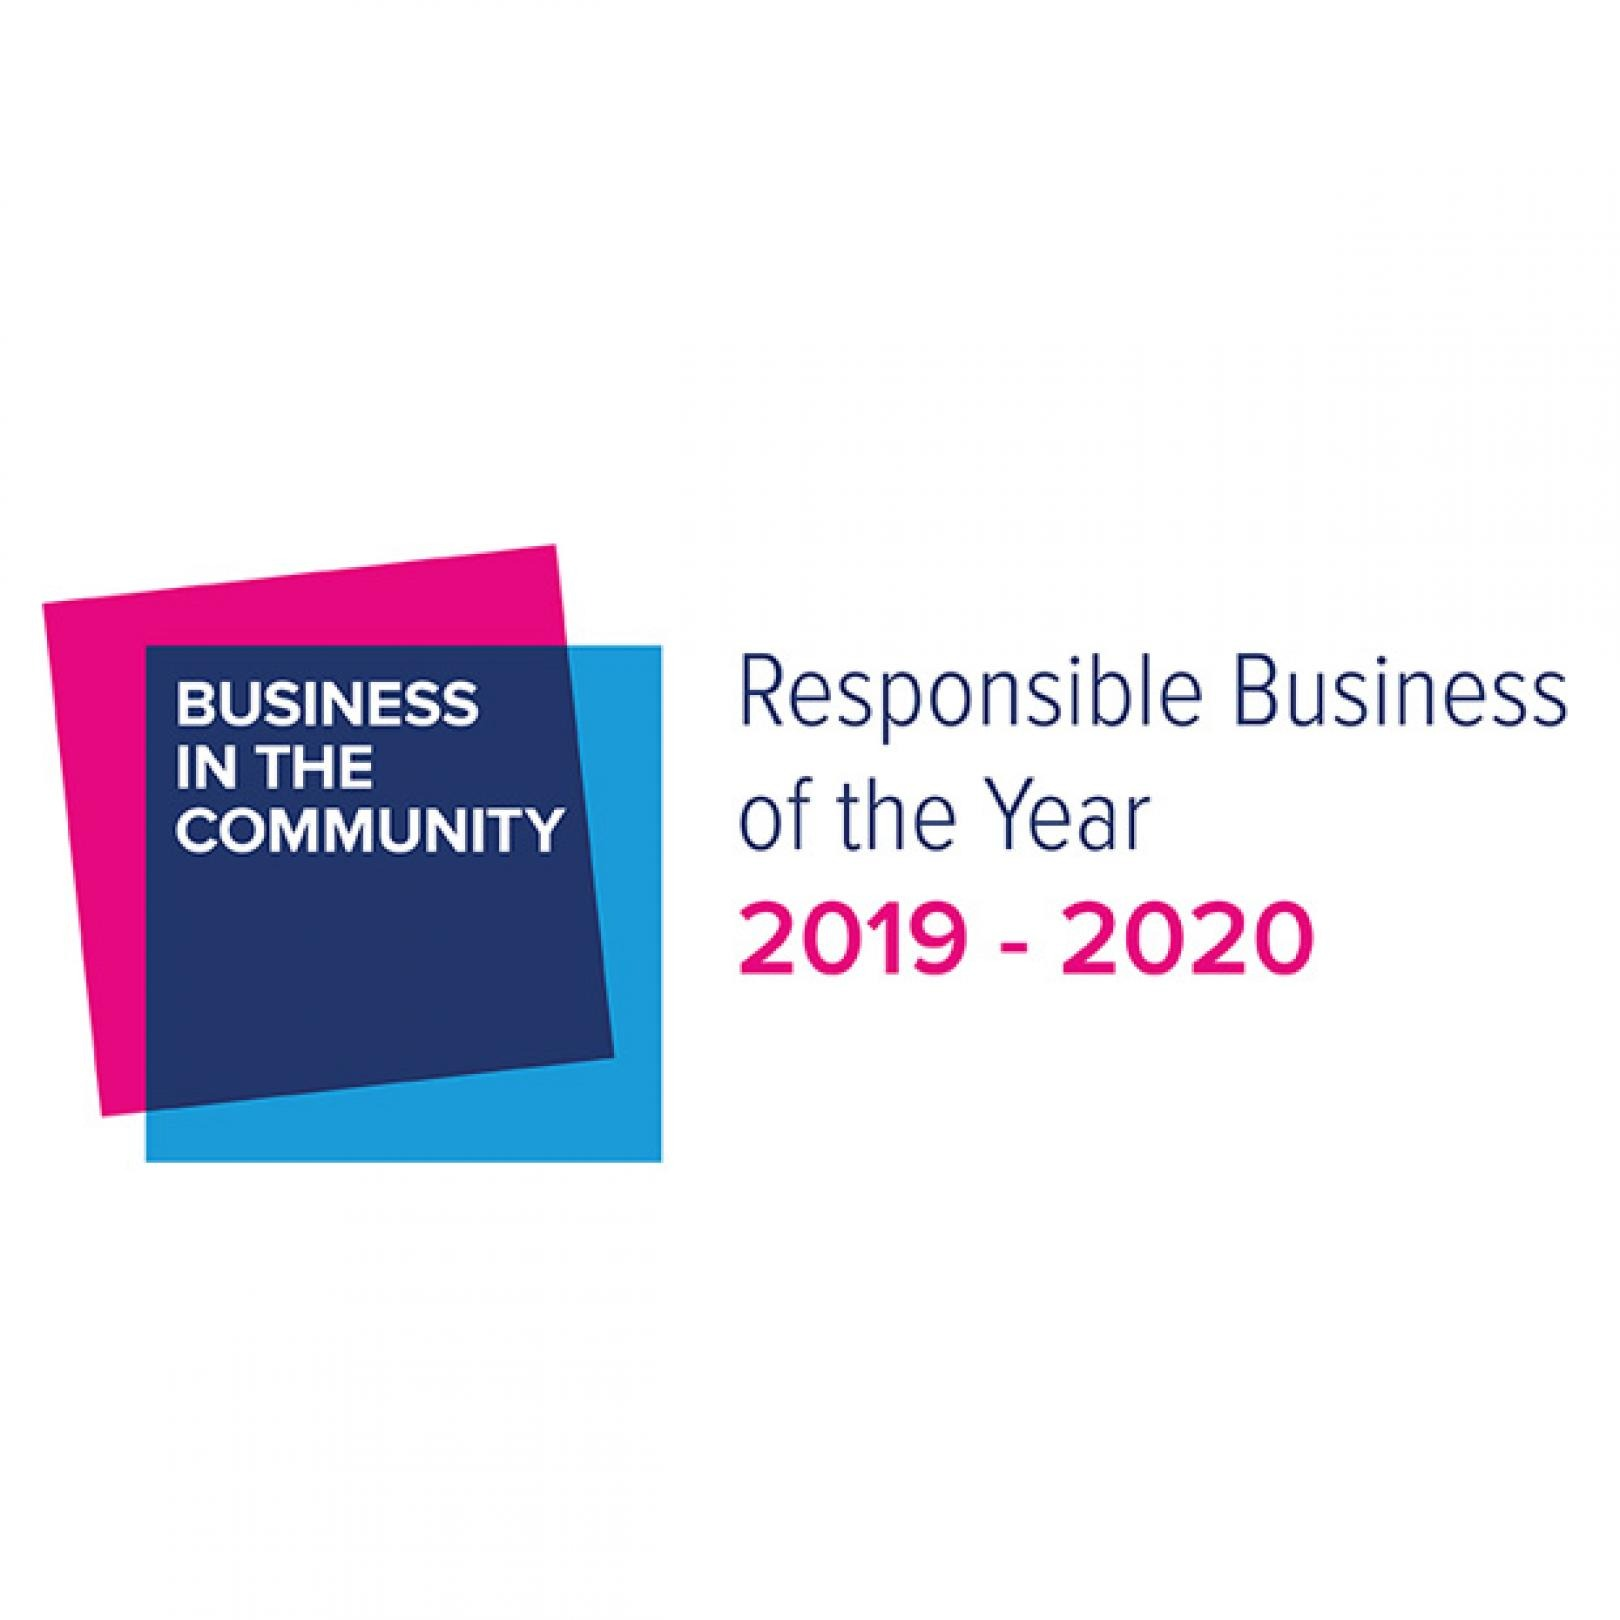 Responsible Business of the Year 2019-2020